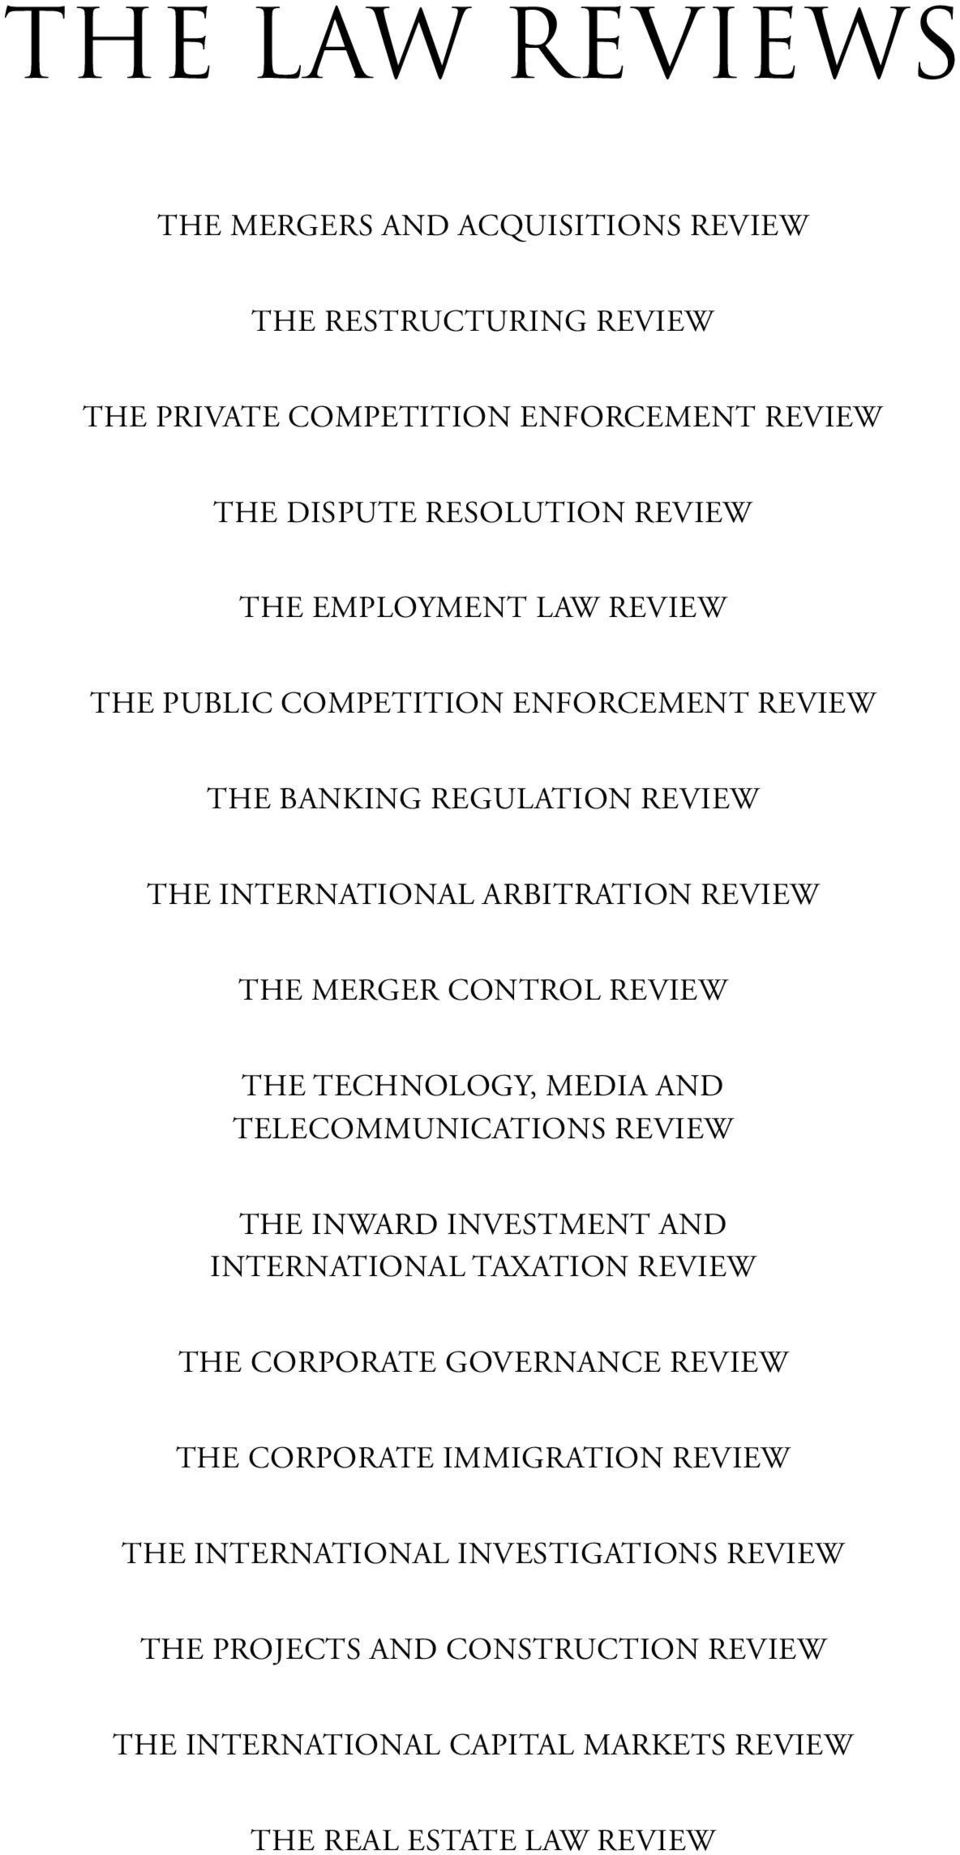 The Technology, Media and Telecommunications Review The Inward Investment and International Taxation Review The Corporate Governance Review The Corporate